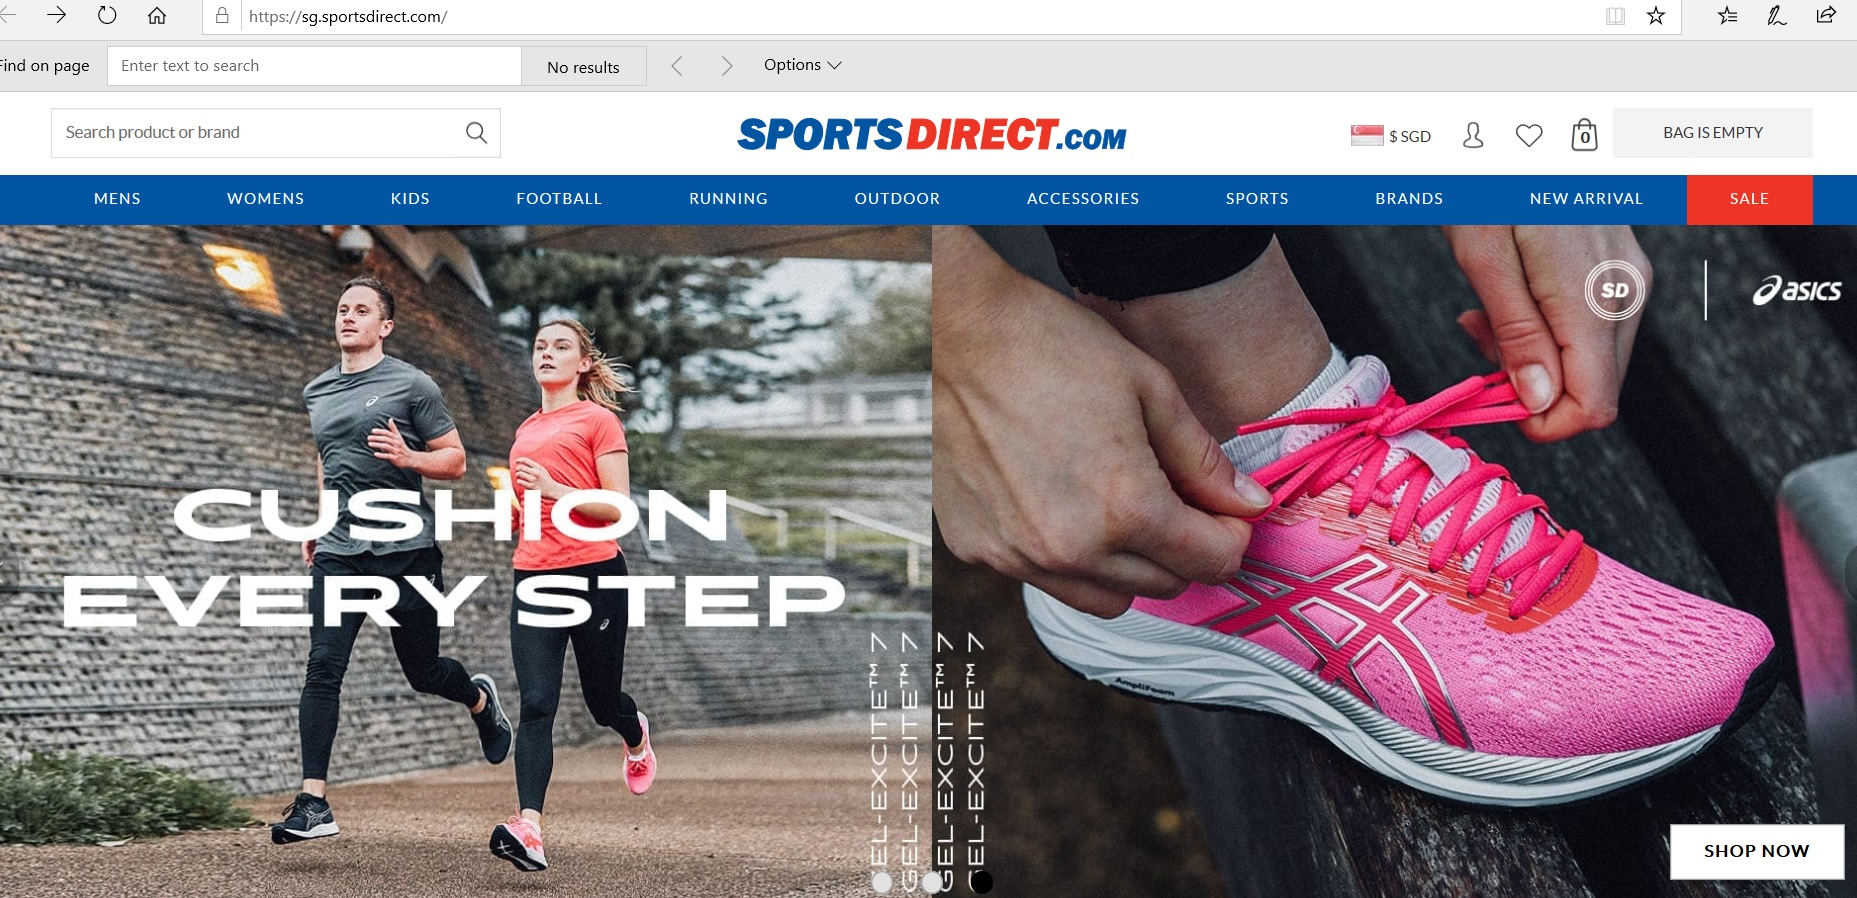 Sports Direct website homepage.